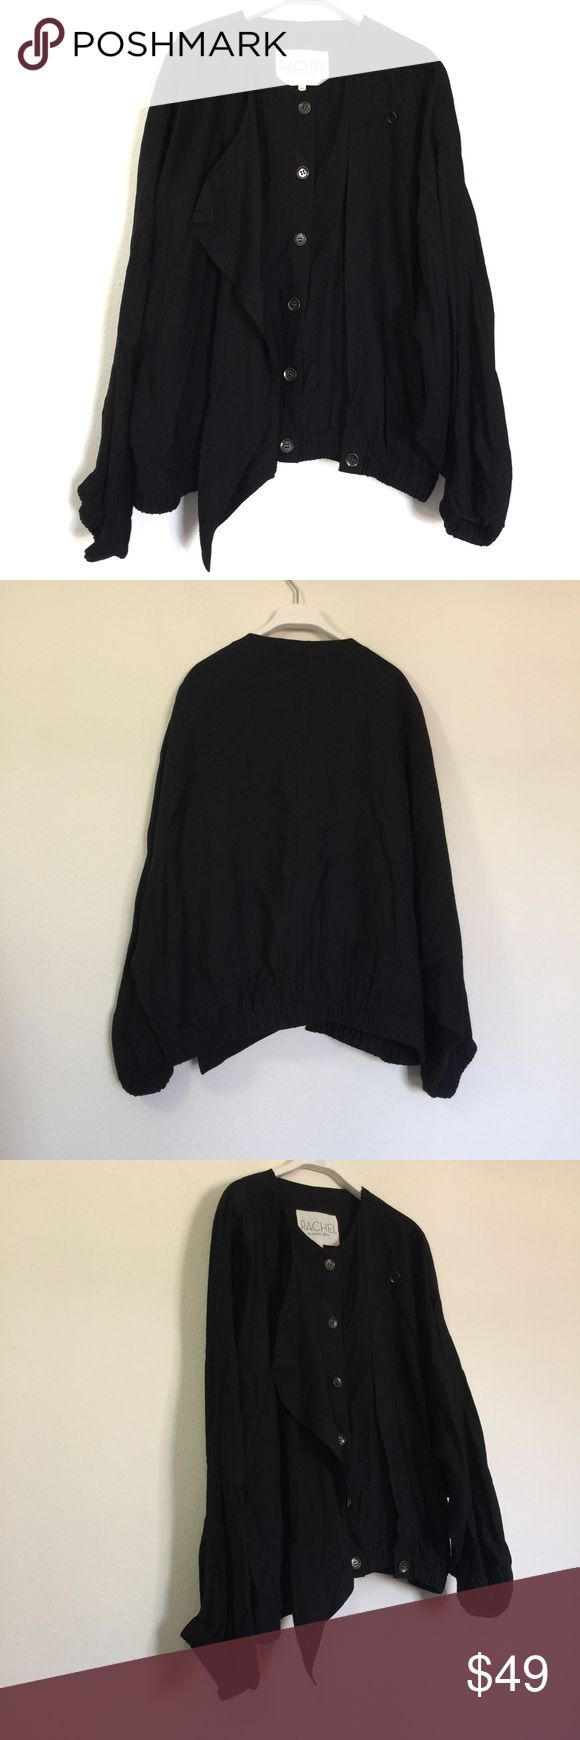 """Rachel Roy Black Converitble Cape Vest Jacket L Rachel Roy Black Converitble Cape Vest Jacket, excellent condition. Inner button down vest with draping sleeves and elastic waistband. Cape has draping dolman sleeves and a button front for colder days. Pit to pit 21"""", length 23.5"""", waist 18.5"""". Rayon blend. RACHEL Rachel Roy Jackets & Coats Capes"""